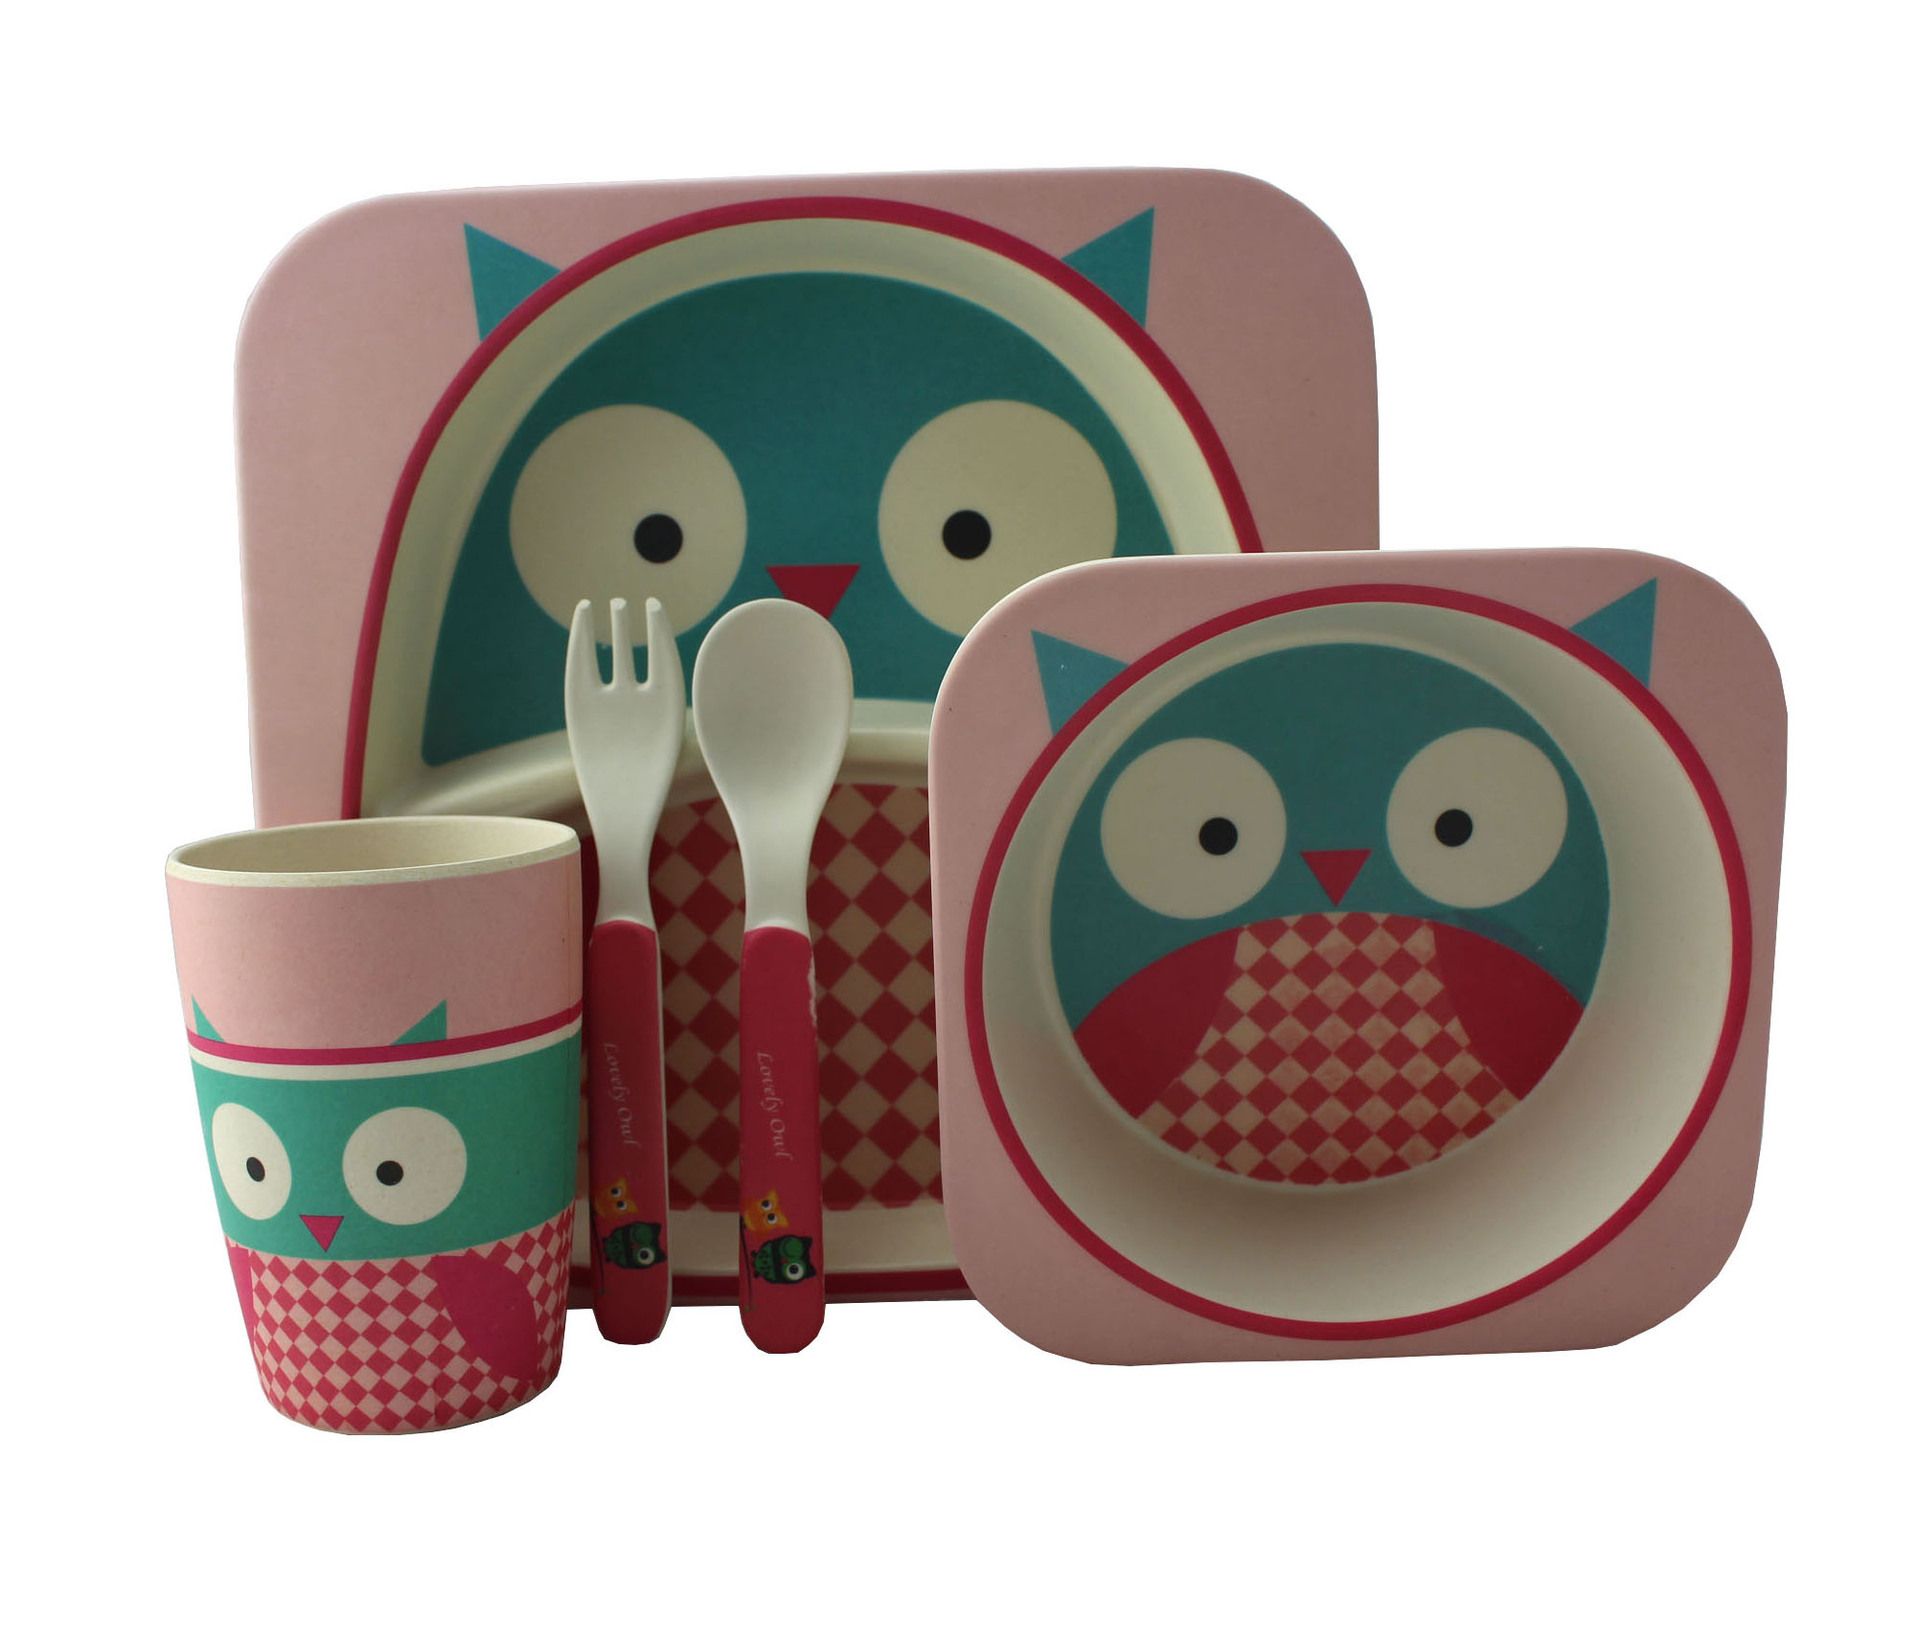 BPA FREE Eco-Friendly Bamboo Fiber kid plate set